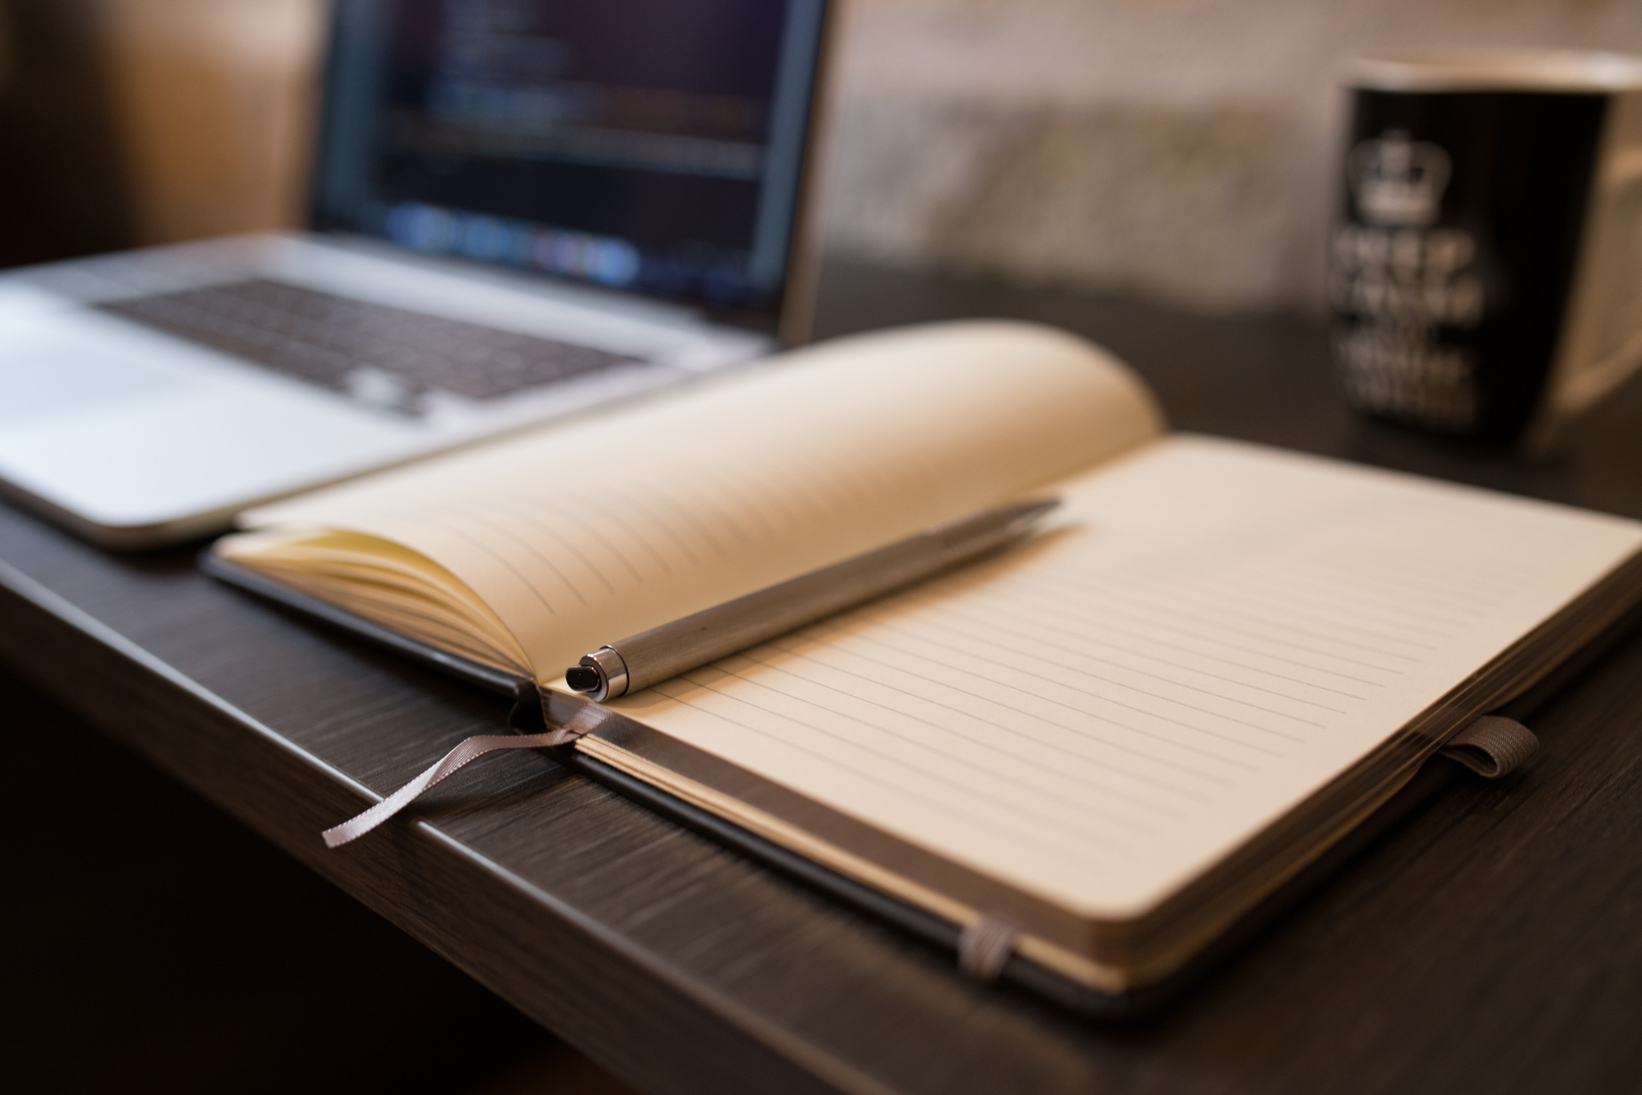 Overcome Writer's Block: Online Writing Courses to Get You Unstuck